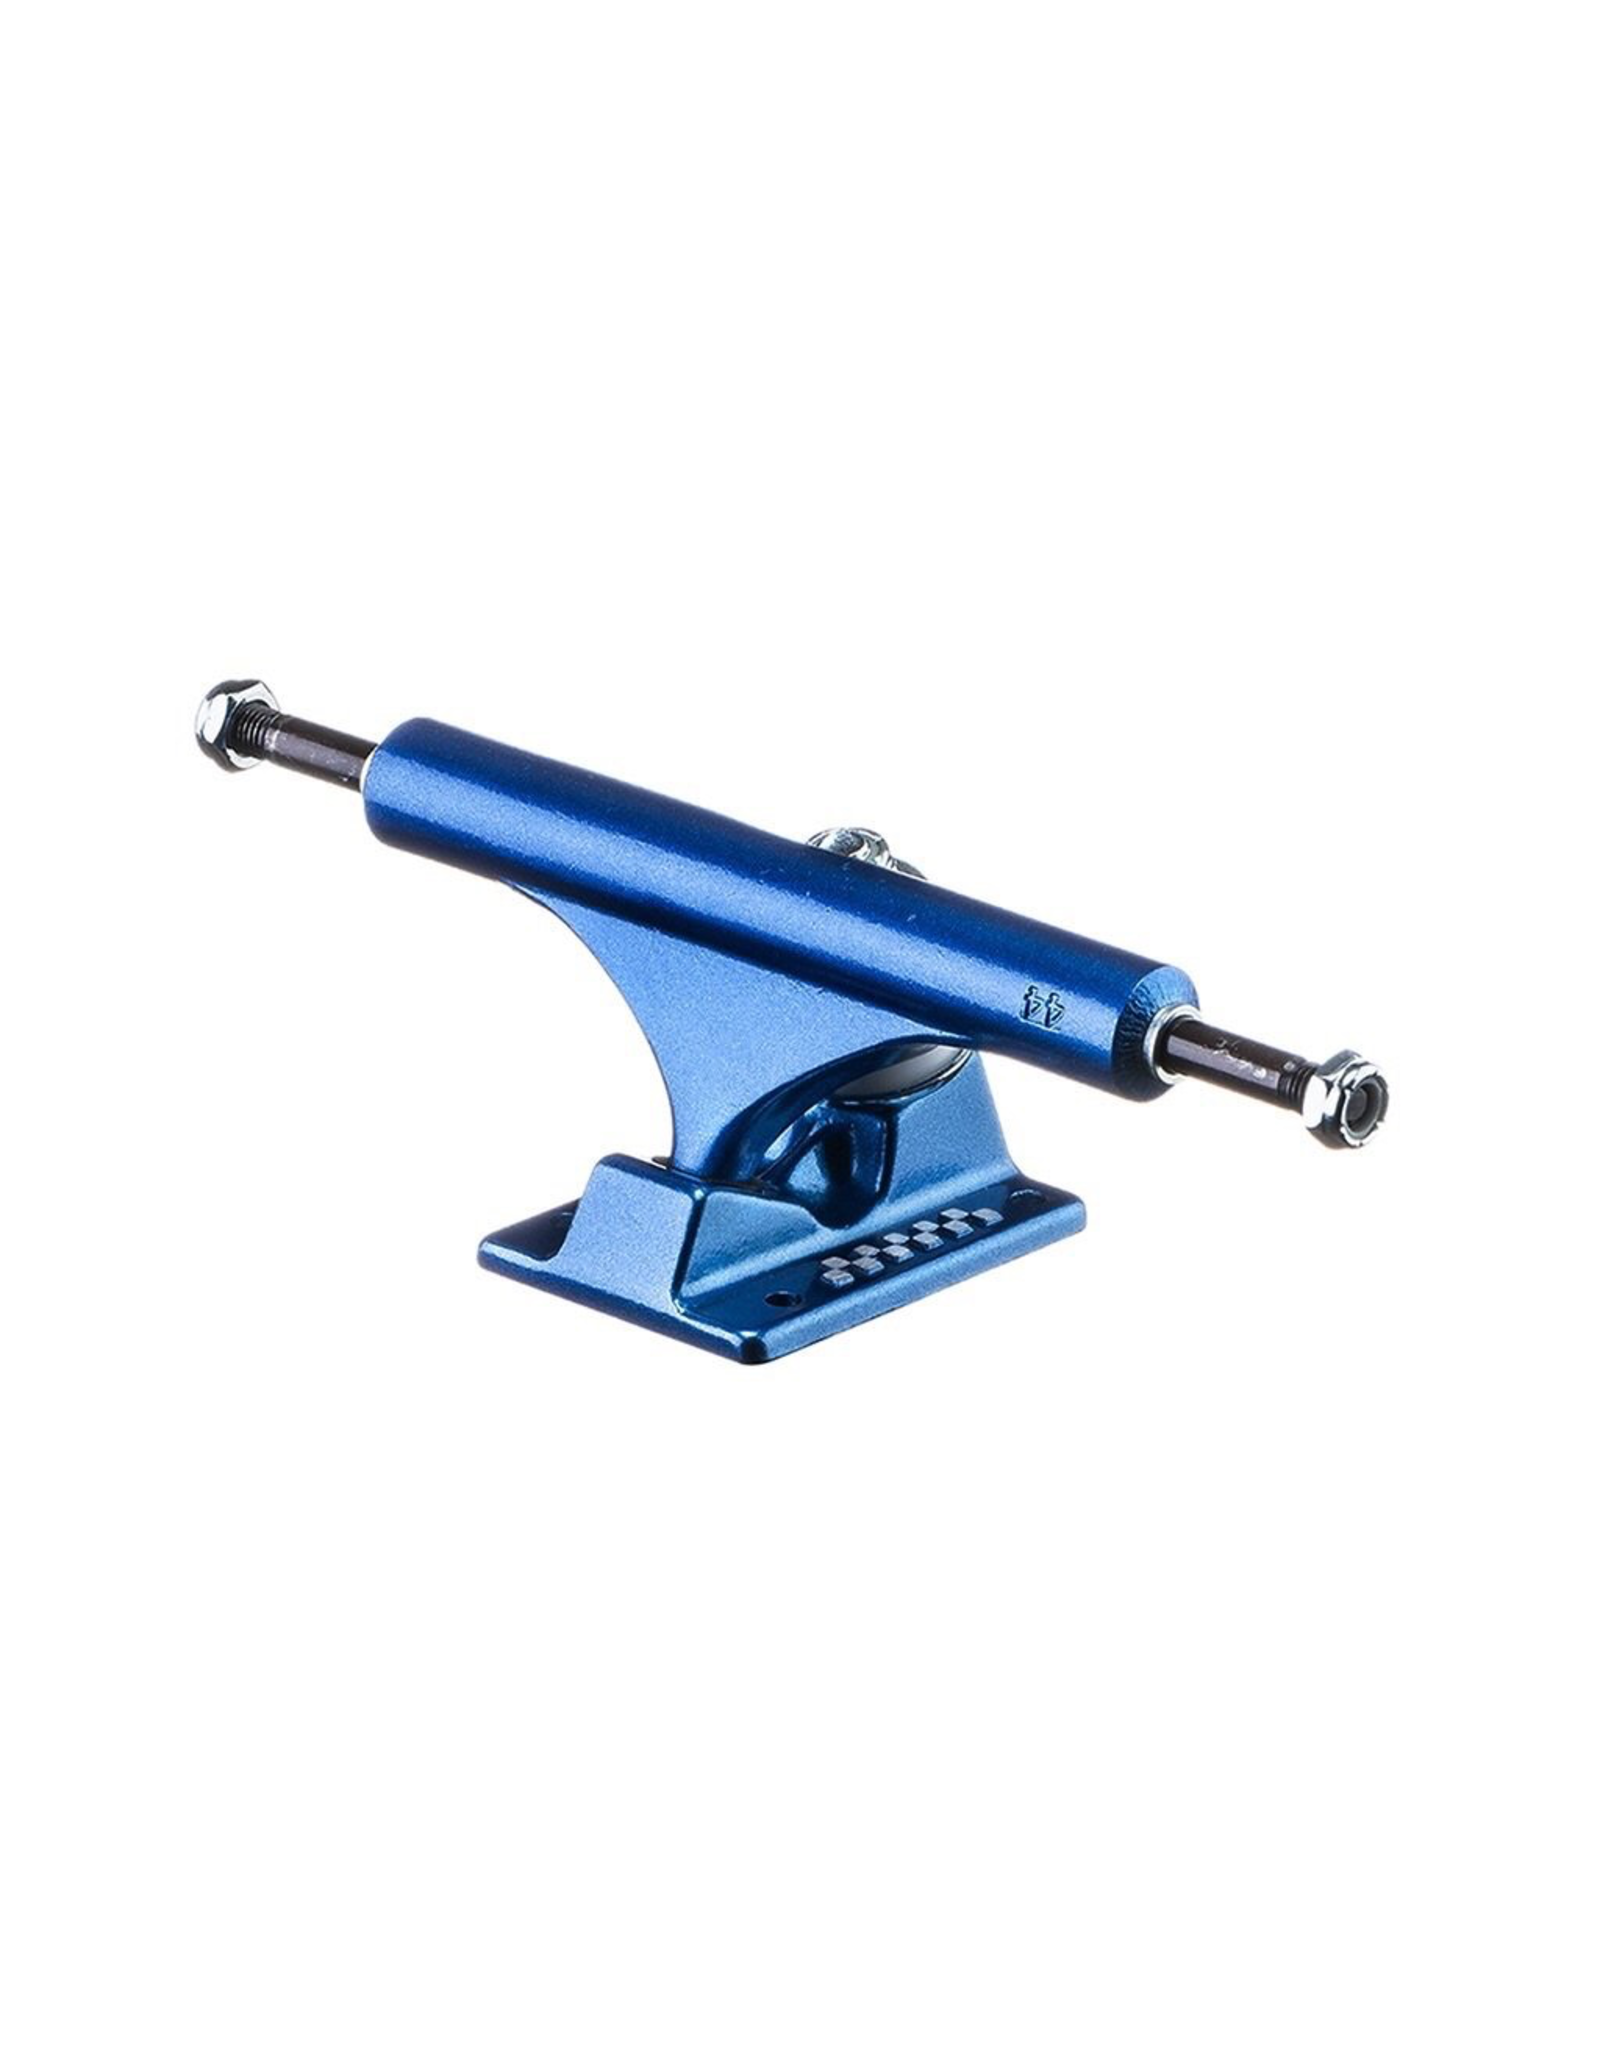 ACE TRUCKS ACE HIGH TRUCK 55/6.375 SET OF TWO (SHELBY BLUE)